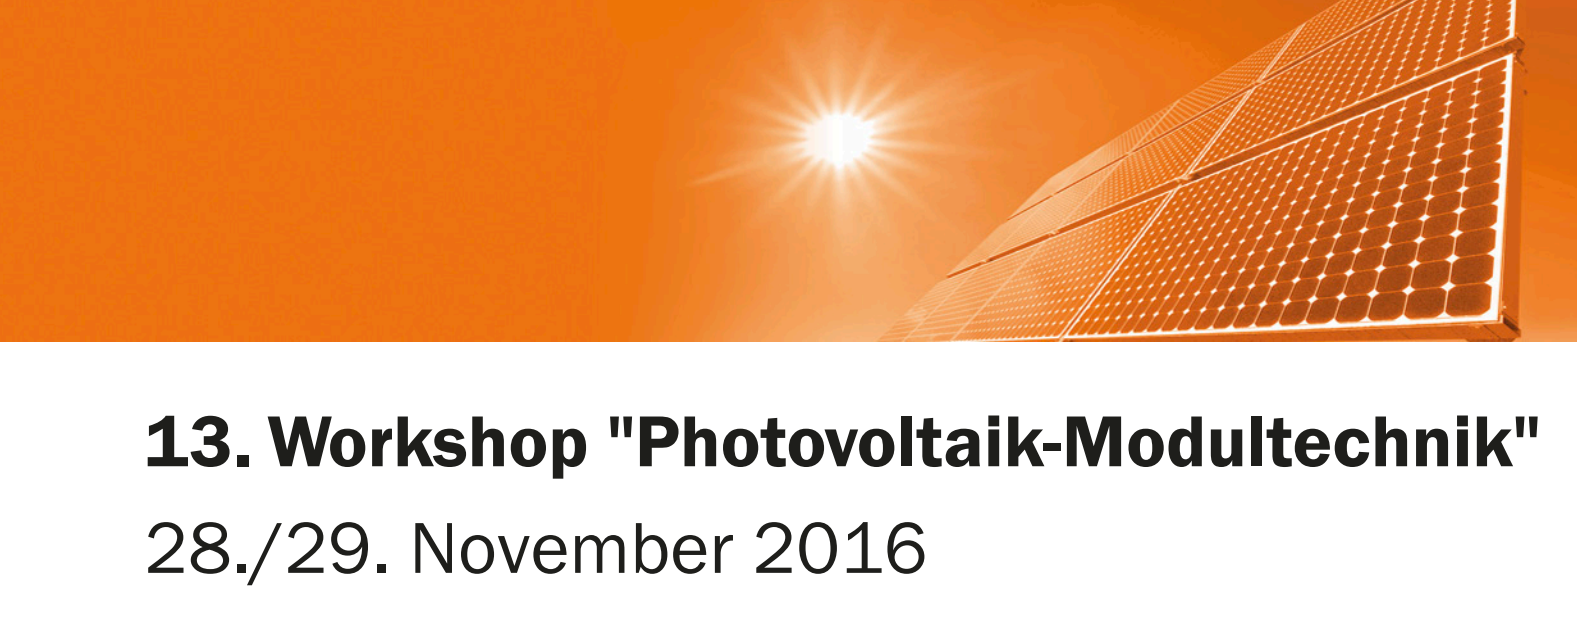 13-workshop-photovoltaik-